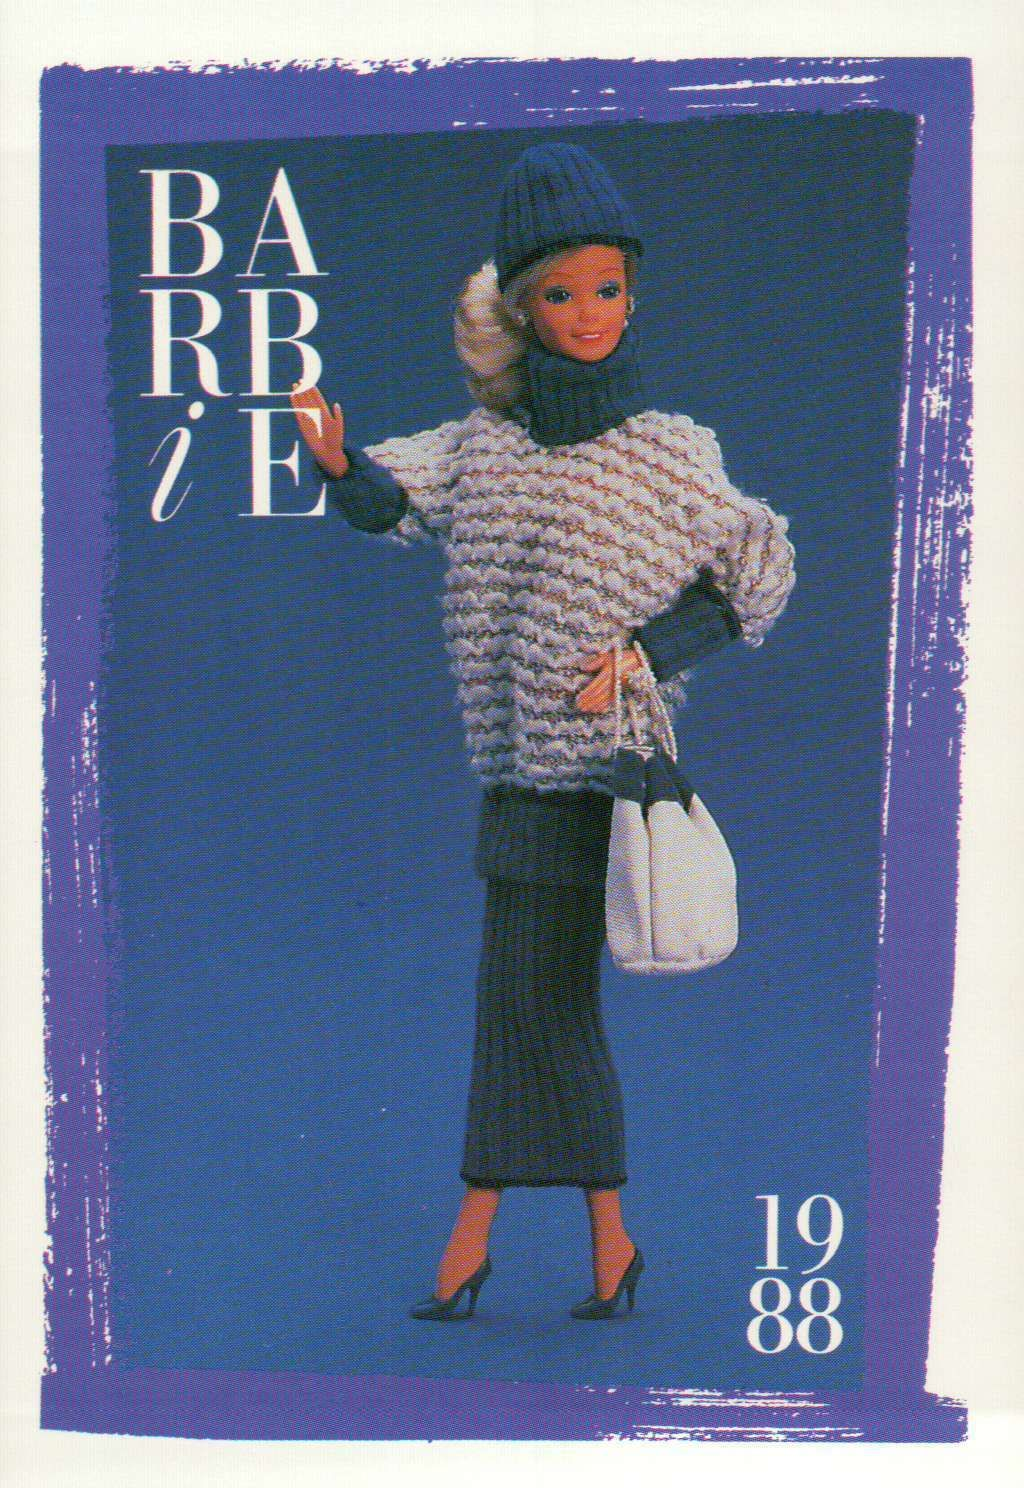 "Barbie Collectible Fashion Card  /"" Spectacular Fashions /""  1985"